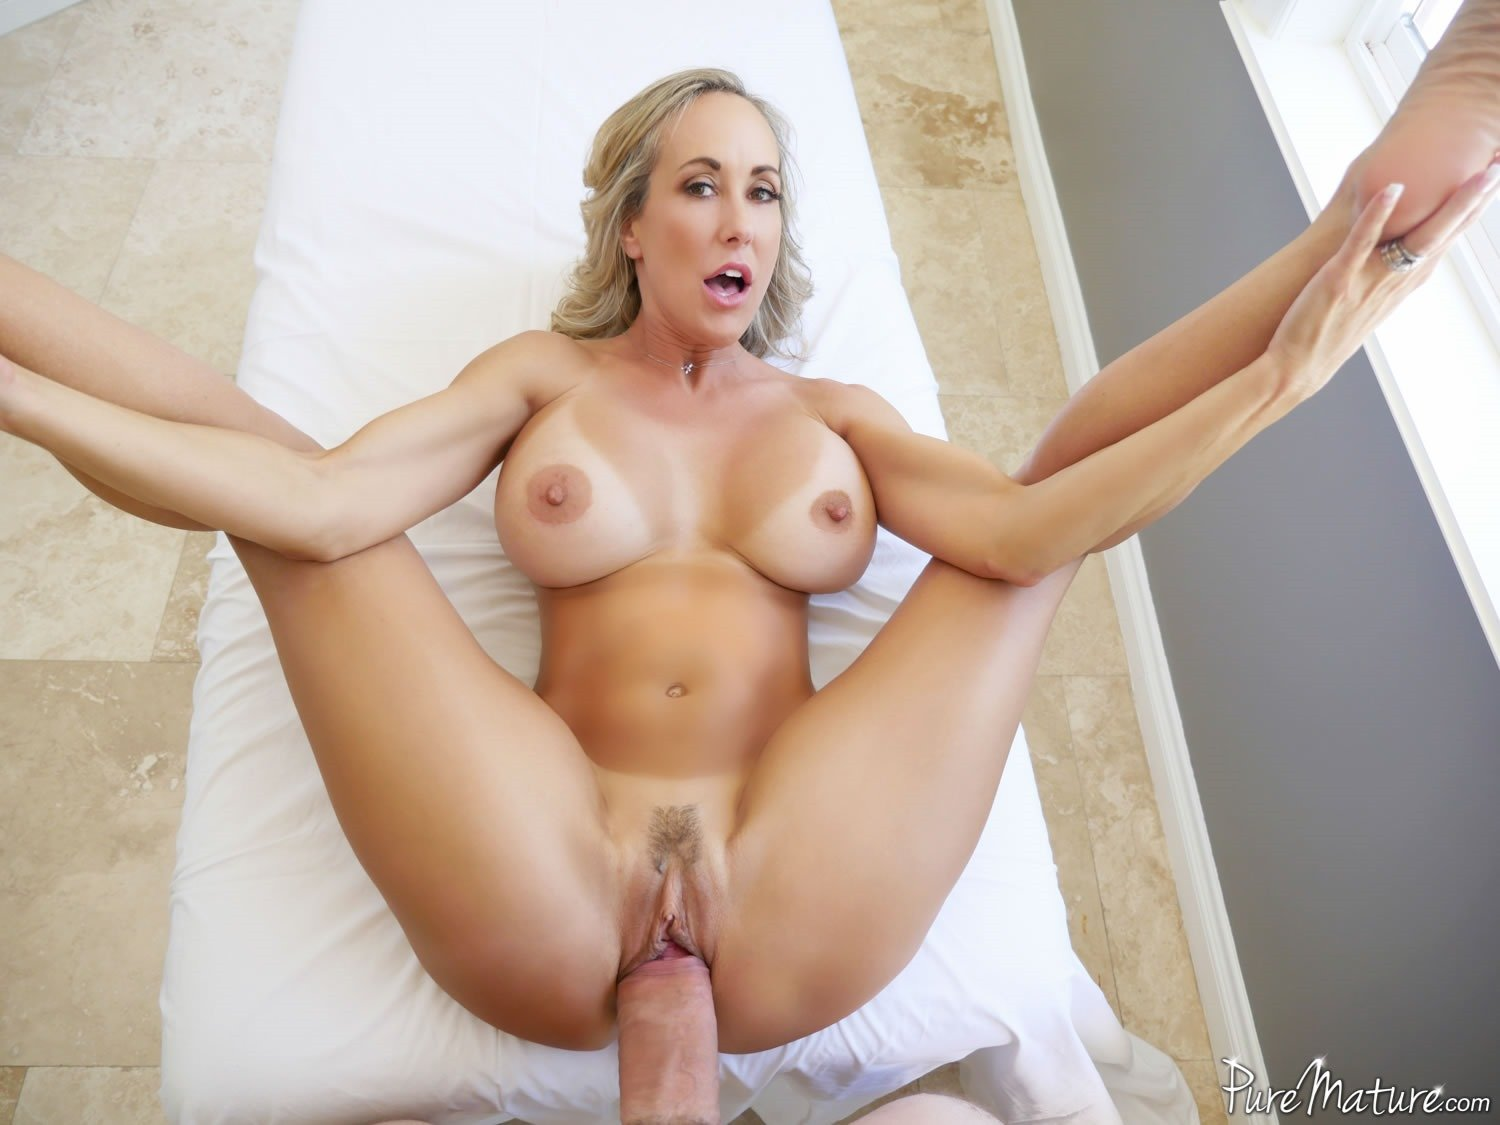 Brandi love pure mature porn very